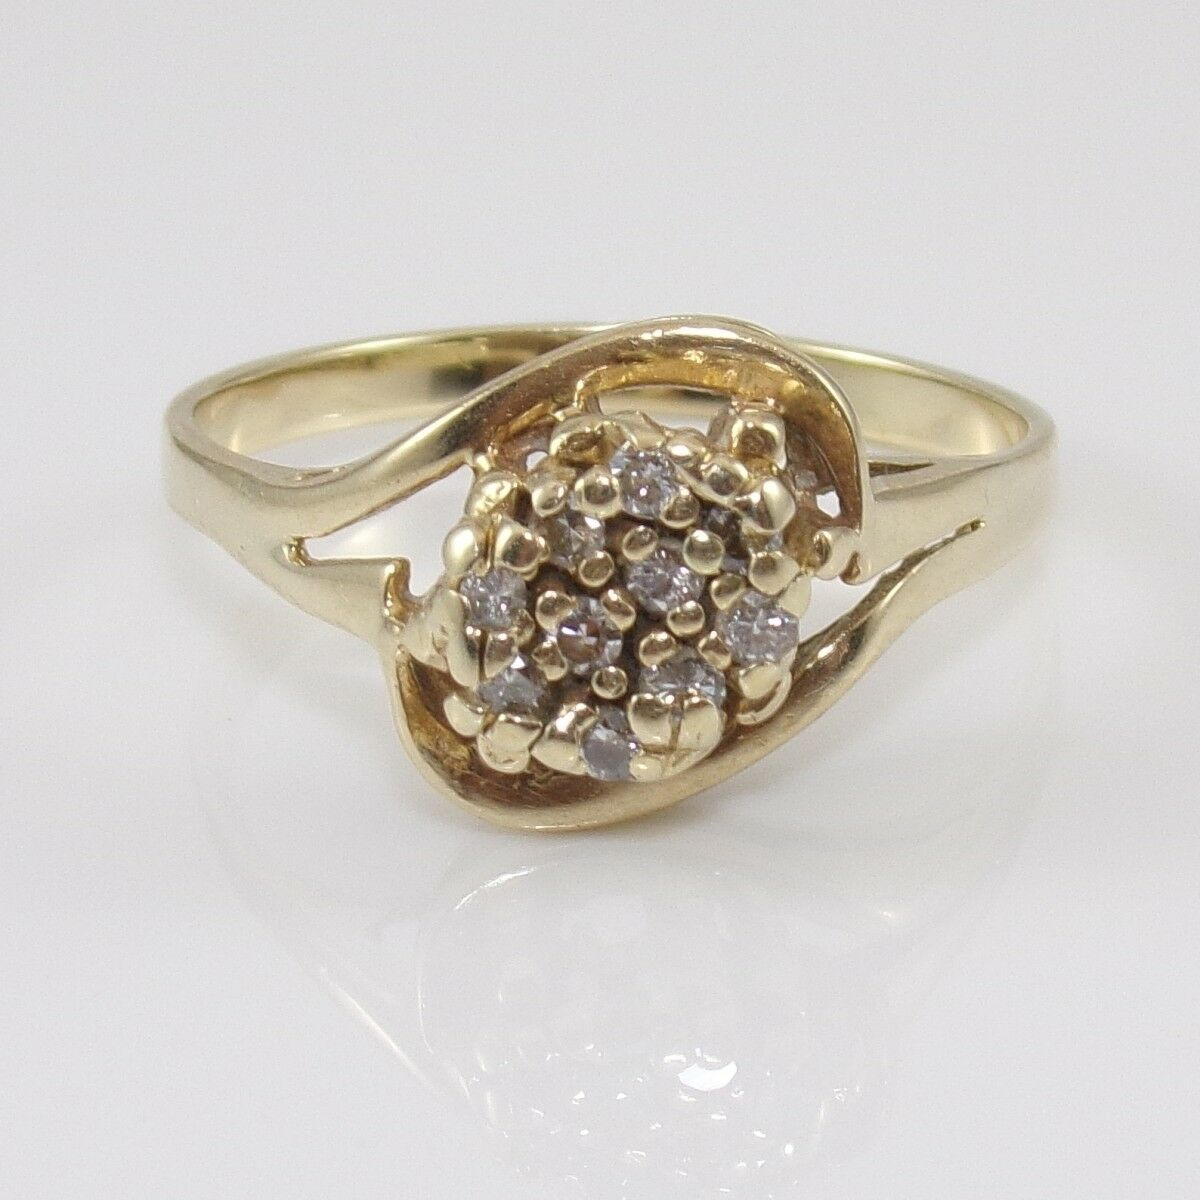 14K Yellow gold Natural Diamond Cluster Ring Size 10.75